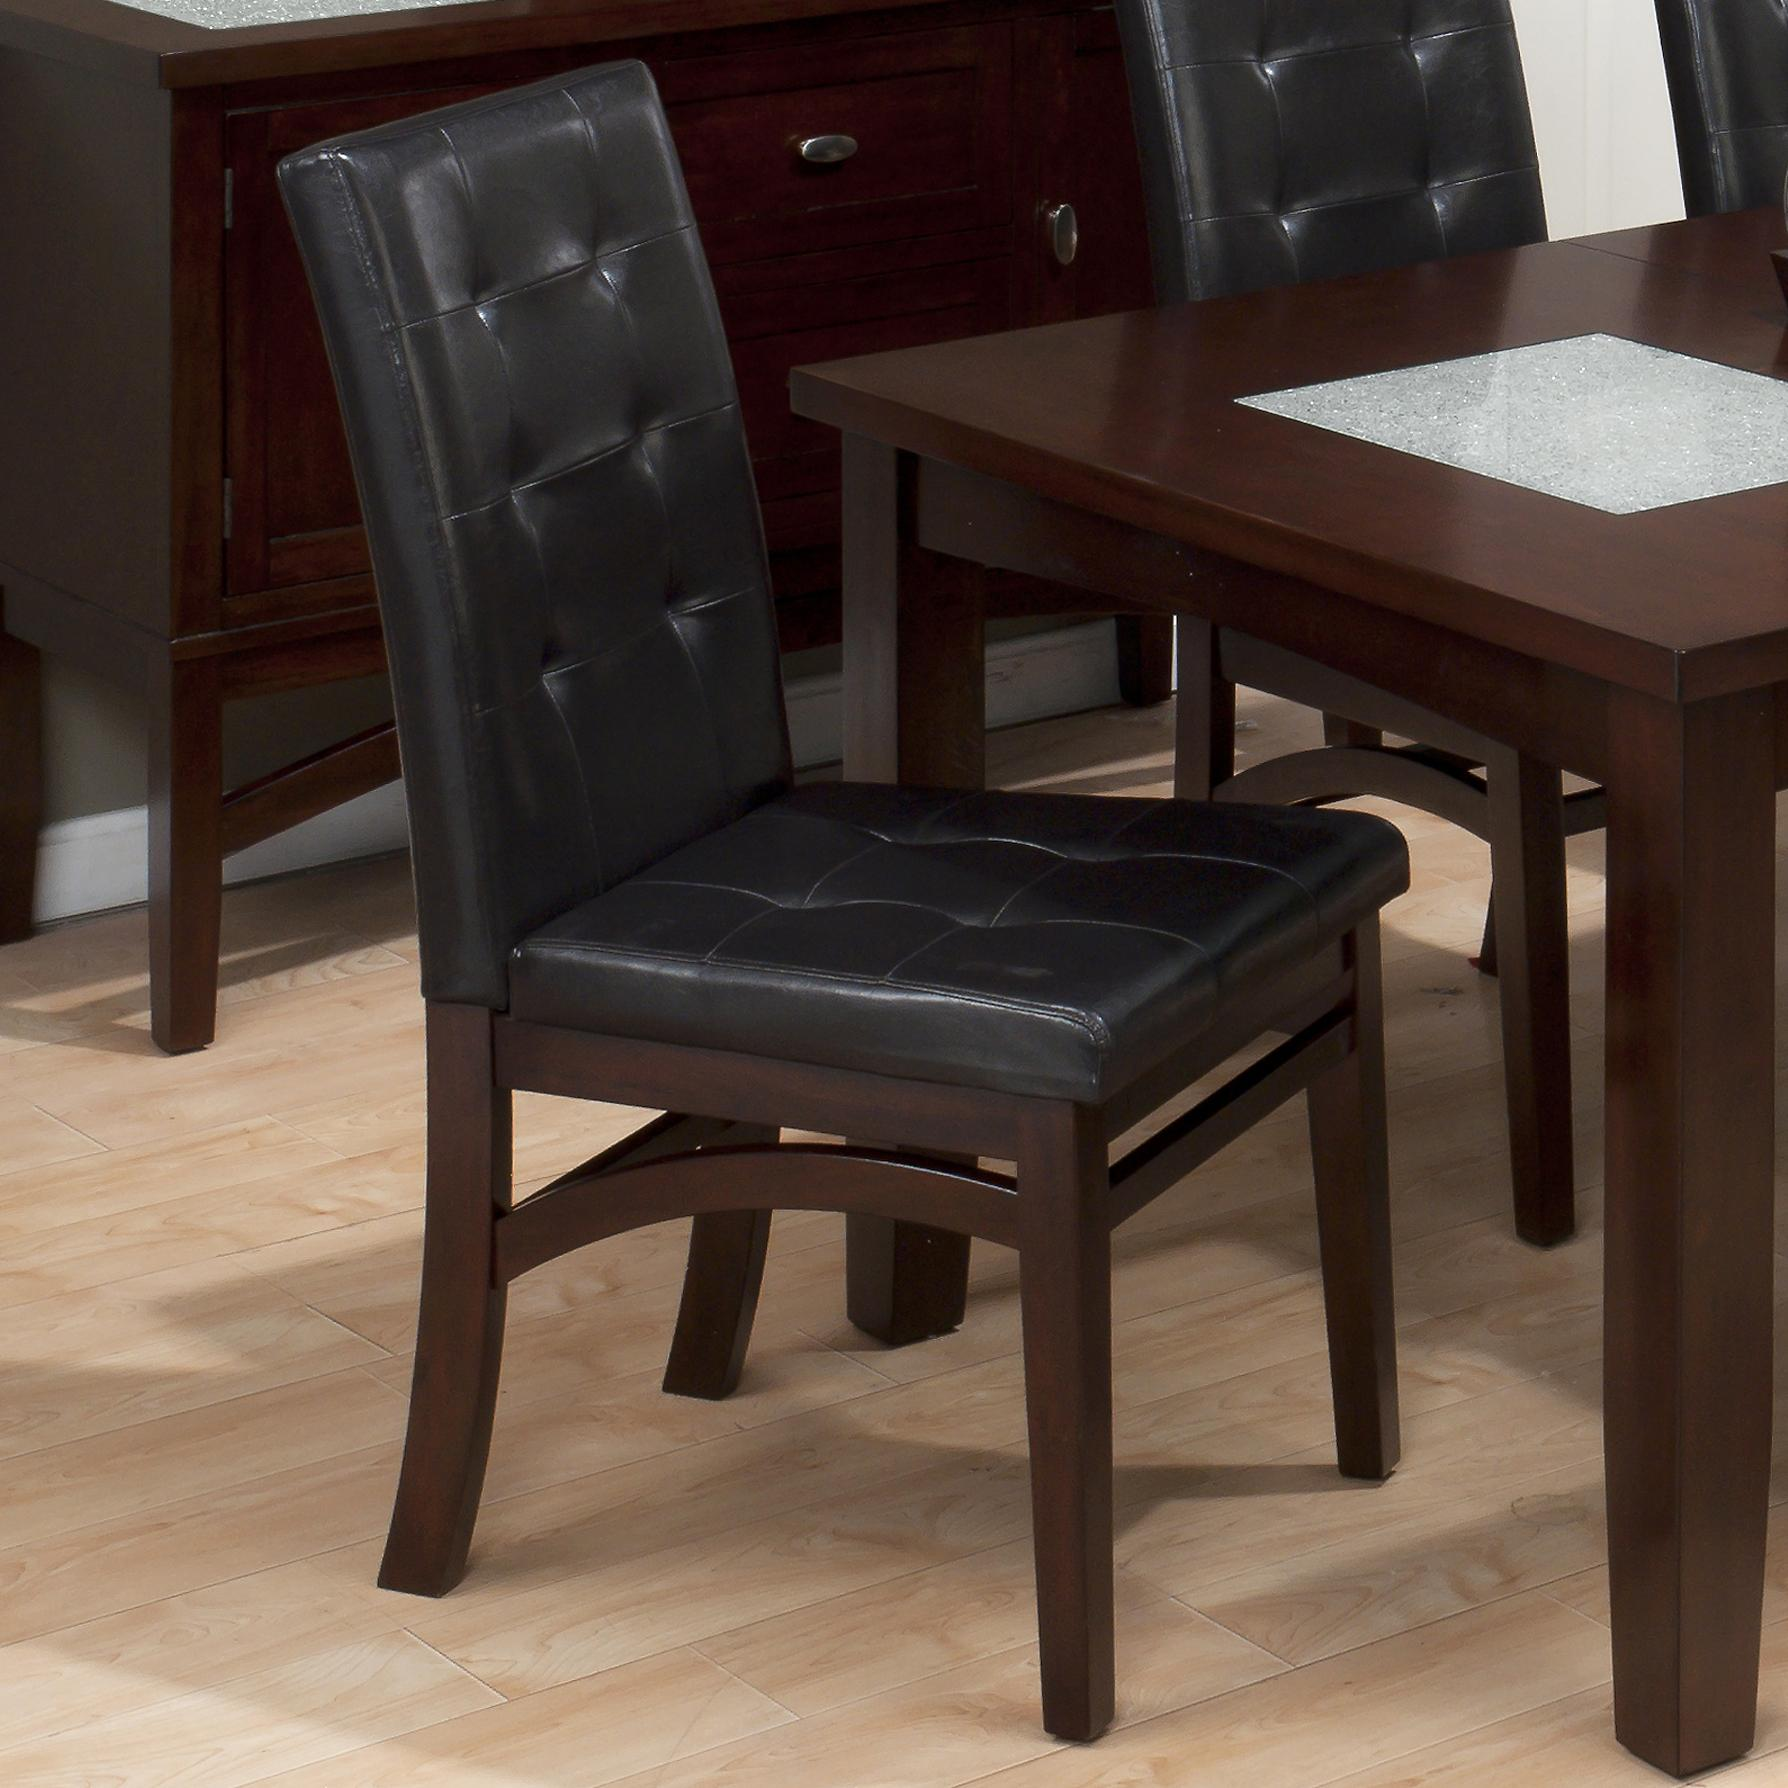 Jofran Chadwick Counter Height Table With Corner Bench And: Jofran Chadwick Espresso 7 Piece Dining Set With Tufted